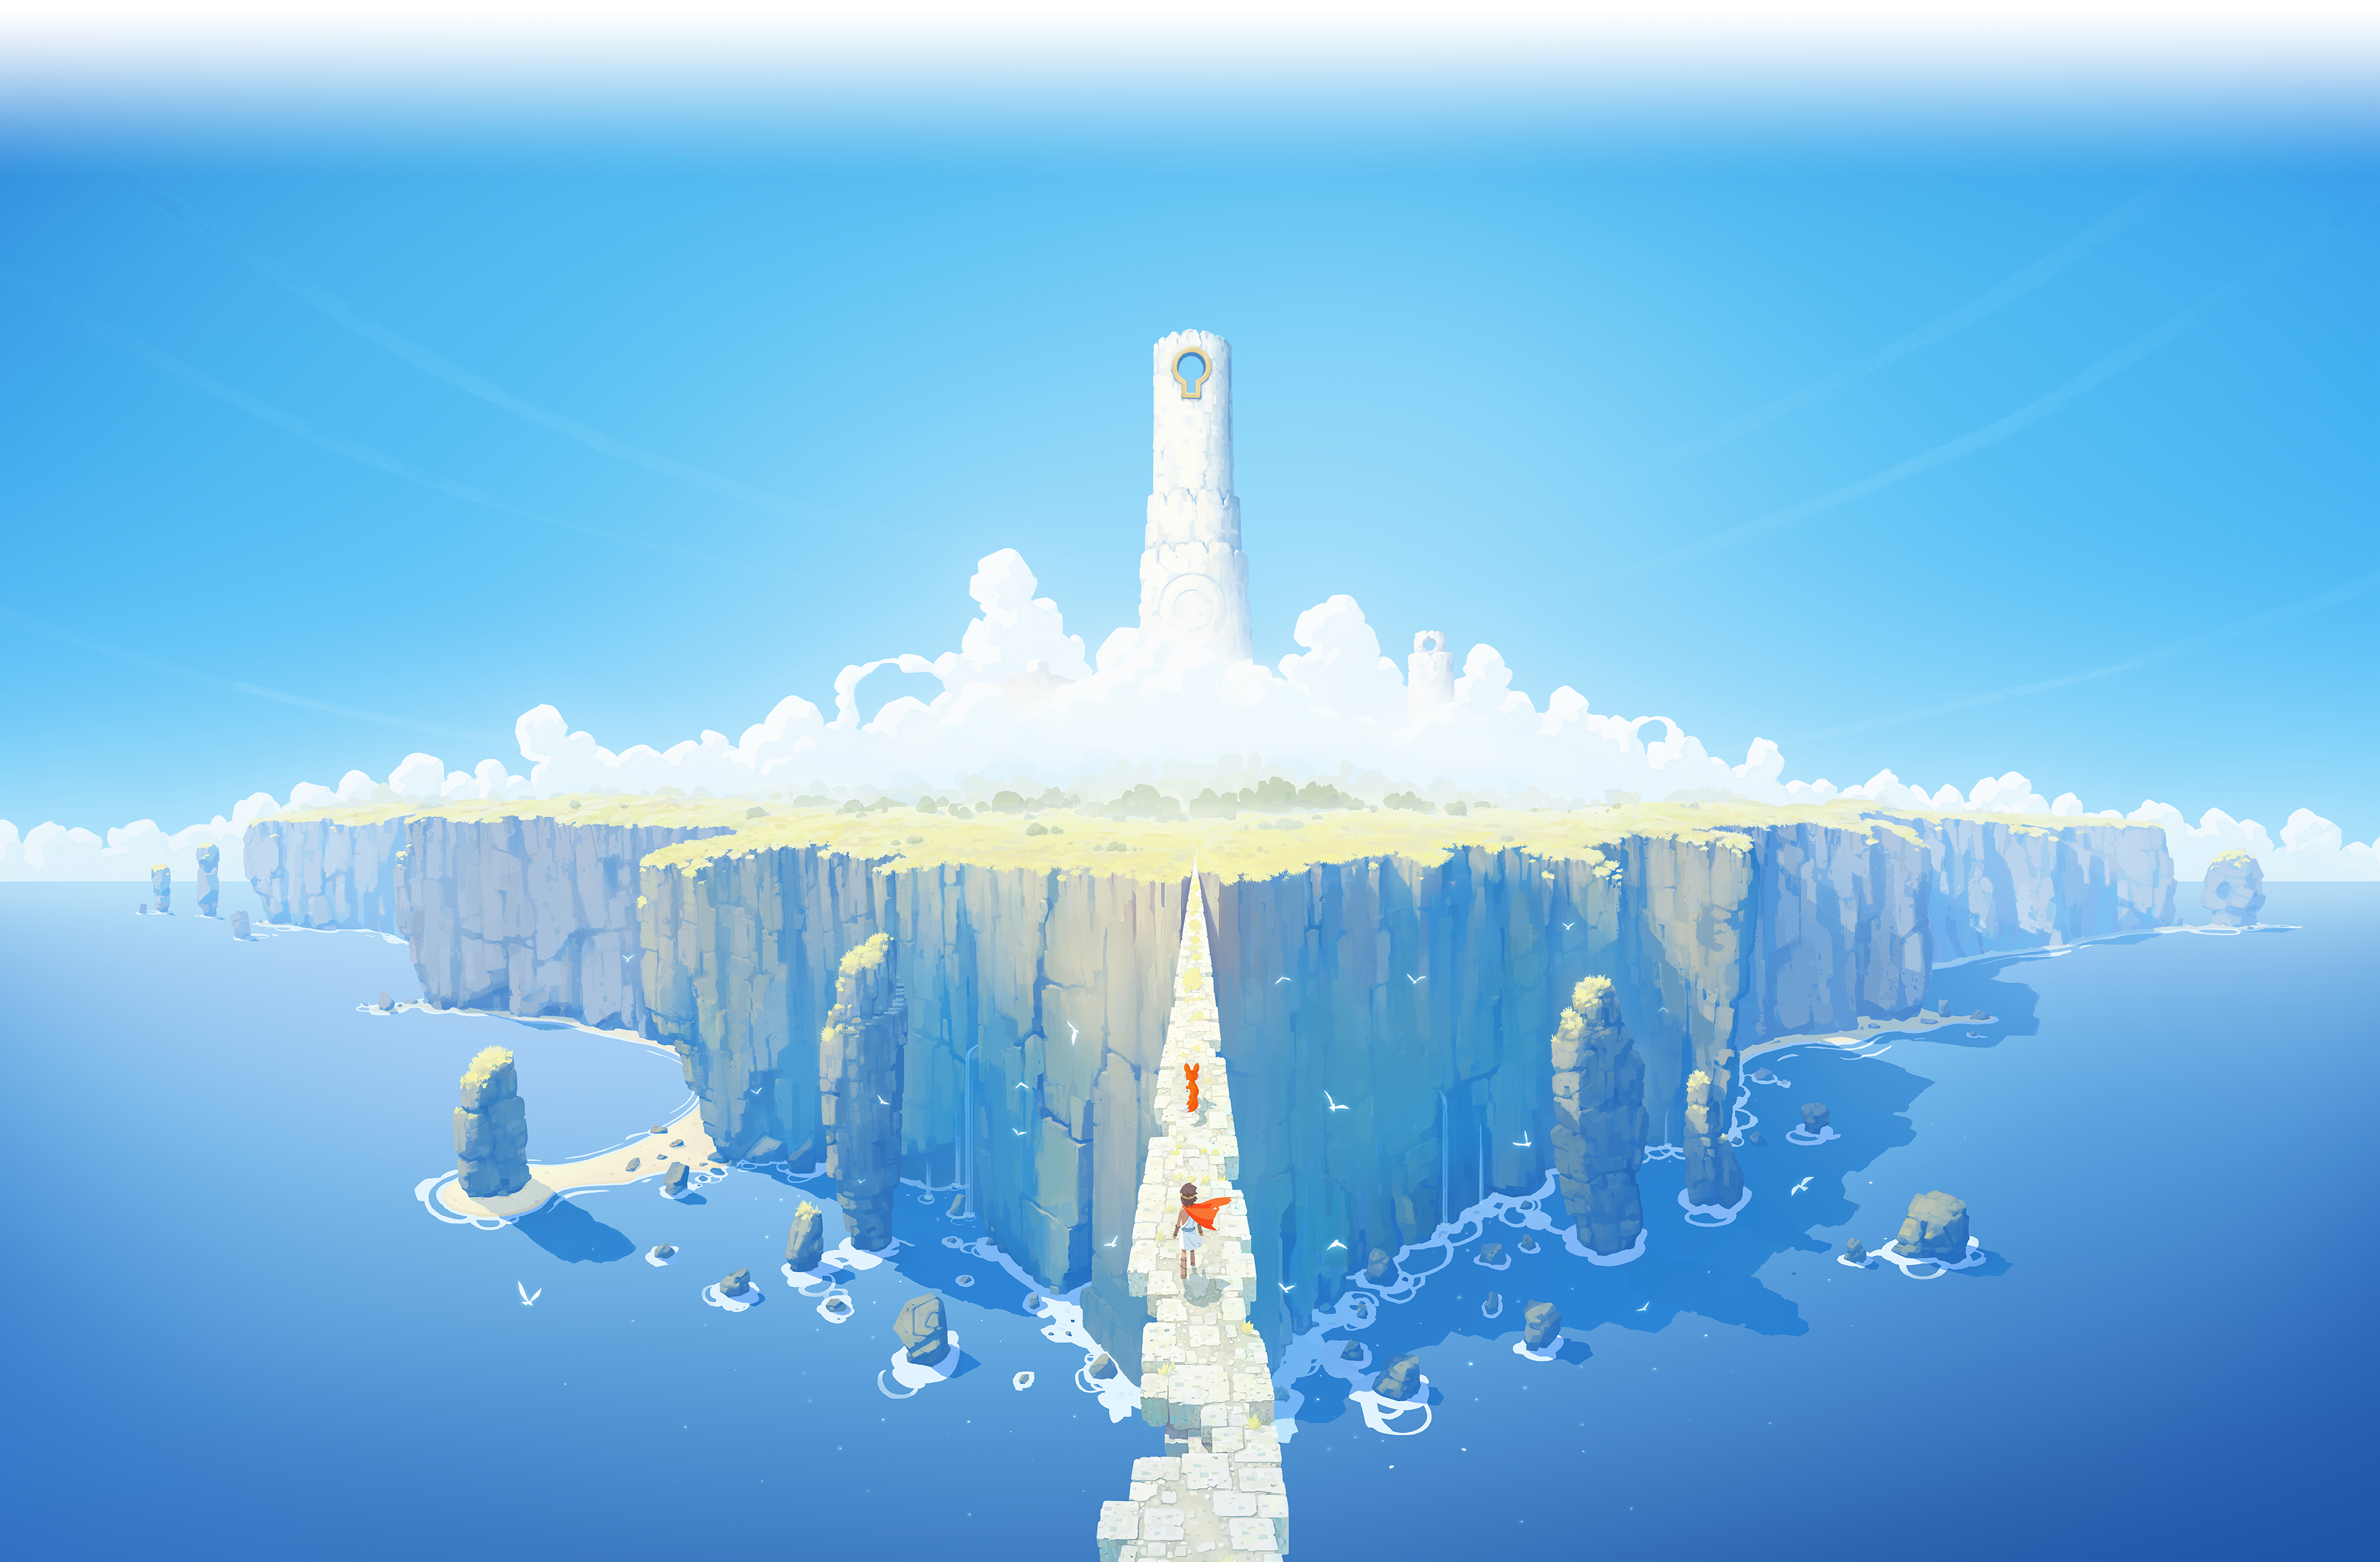 Rime Website Background That Can Be Used For Wallpaper Game Concept Art 3840x2160 Wallpaper Hd Wallpaper